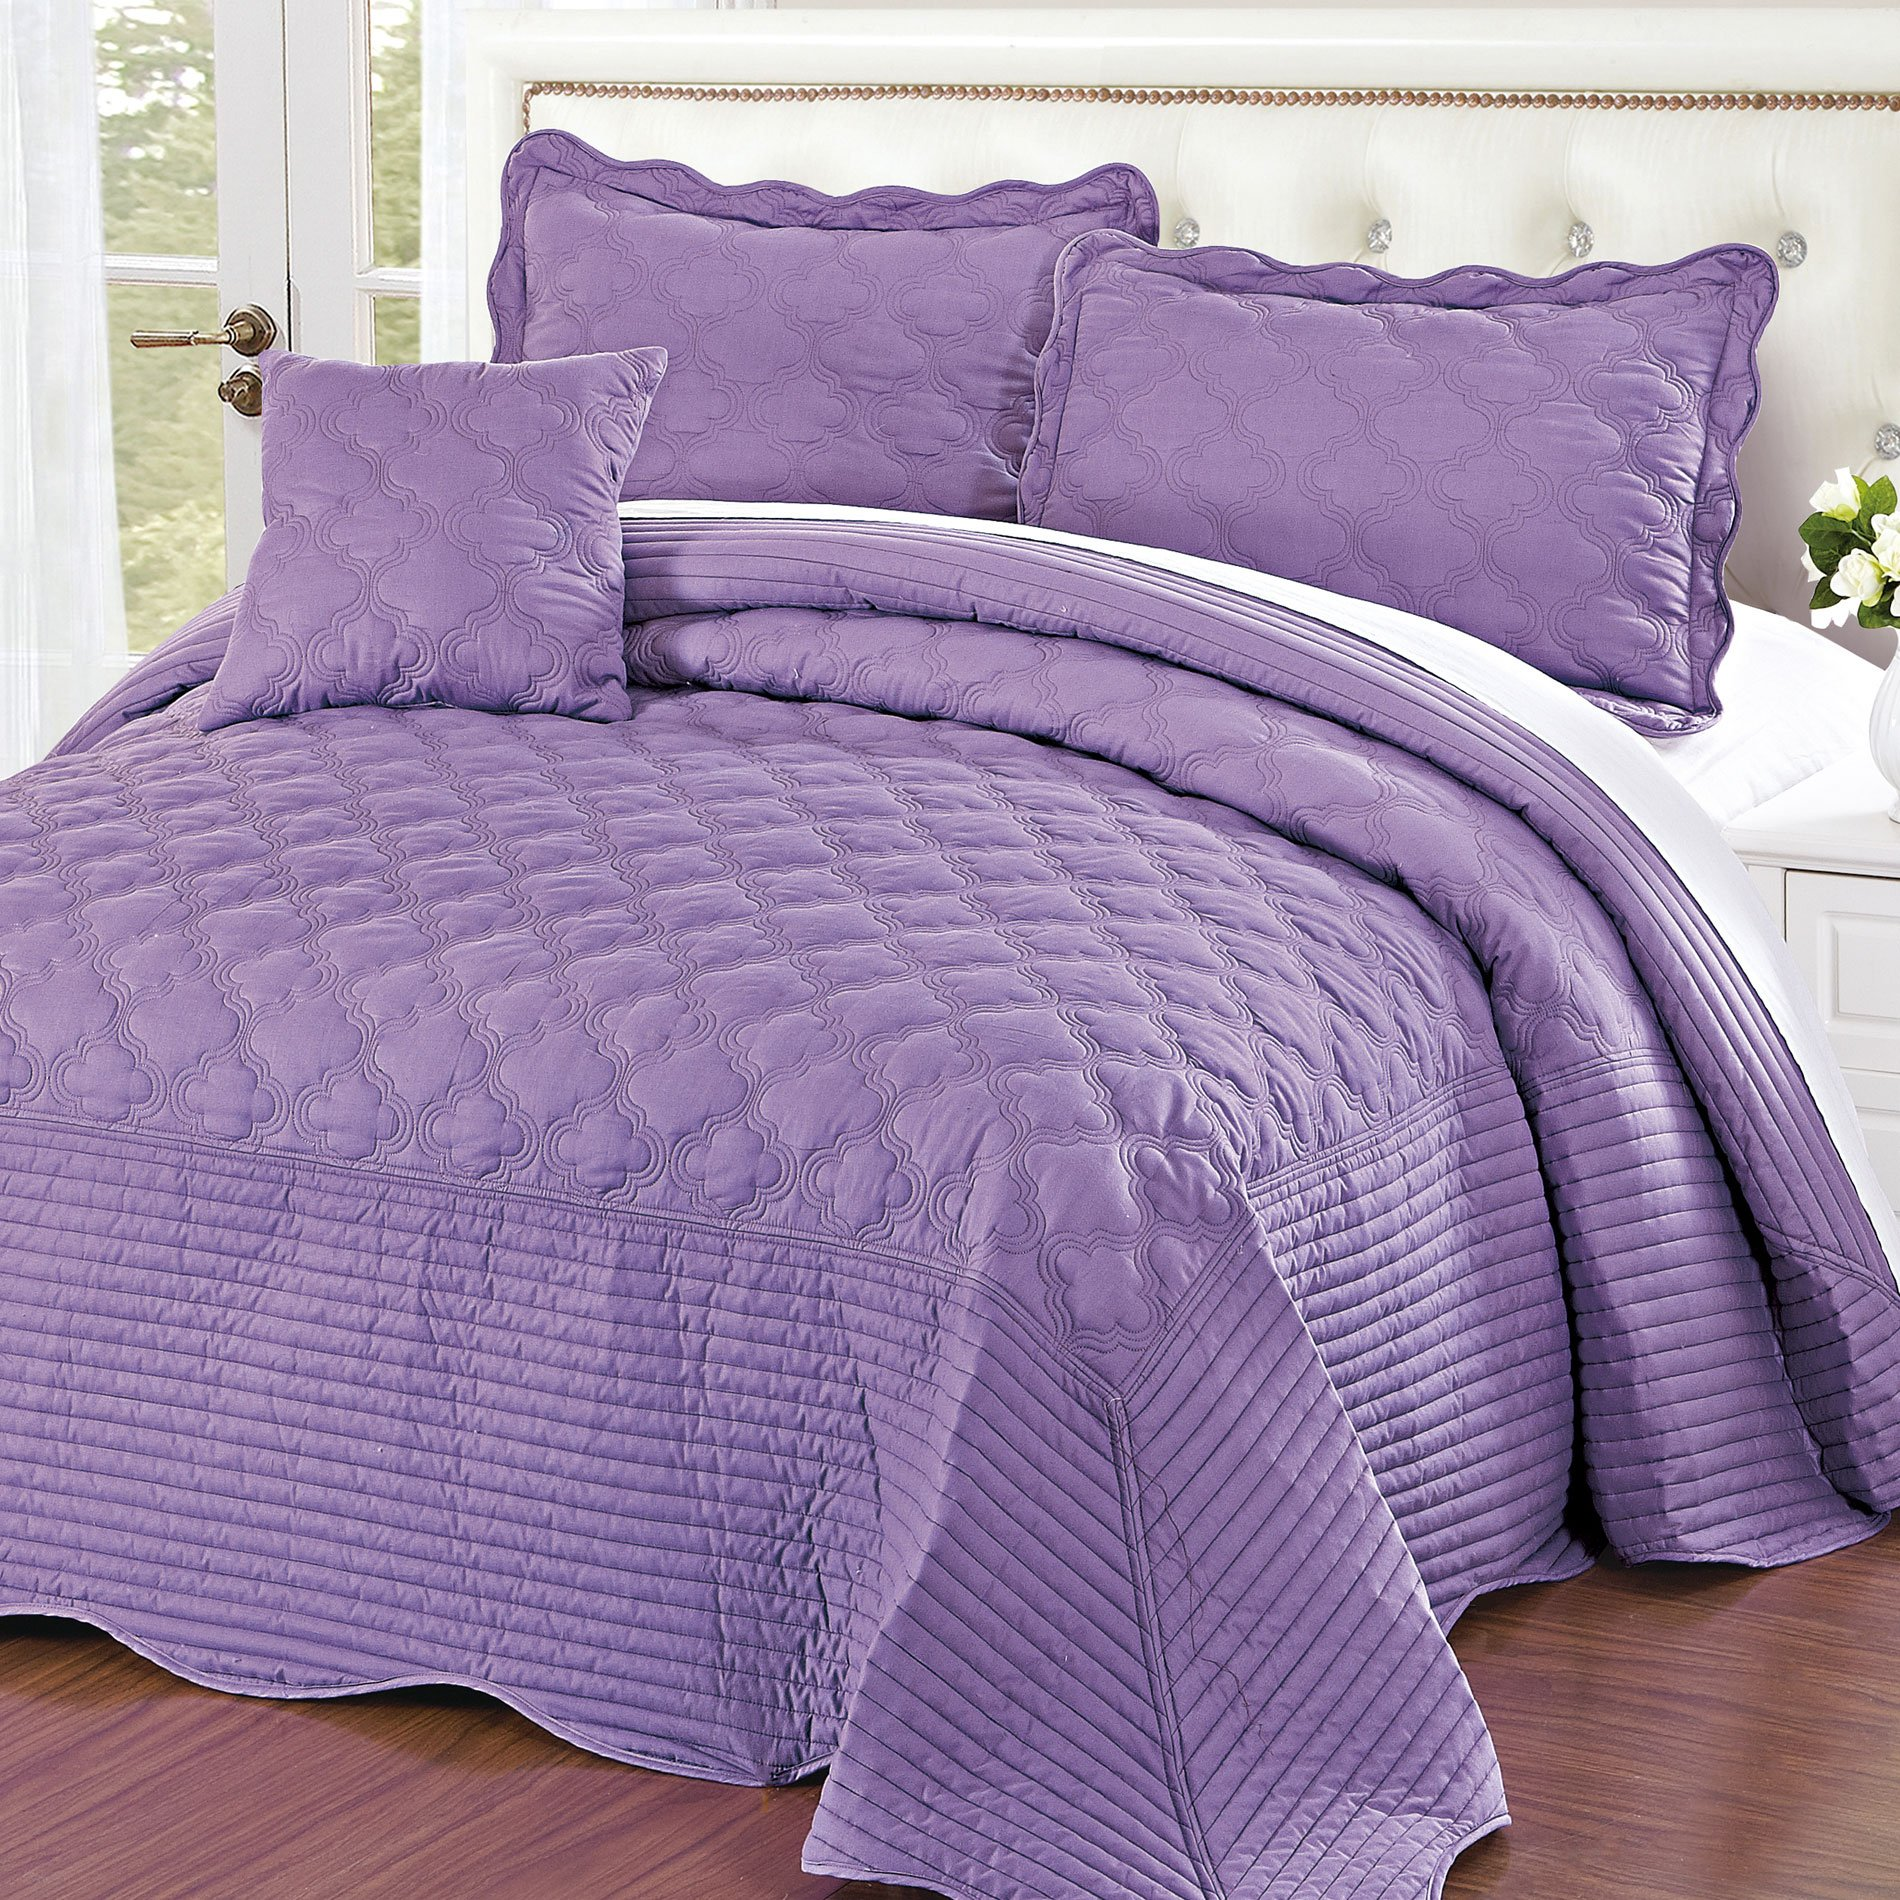 Home Soft Things Serenta Quilted Cotton 4 Pieces Bedspread Set, Queen, Sea Fog